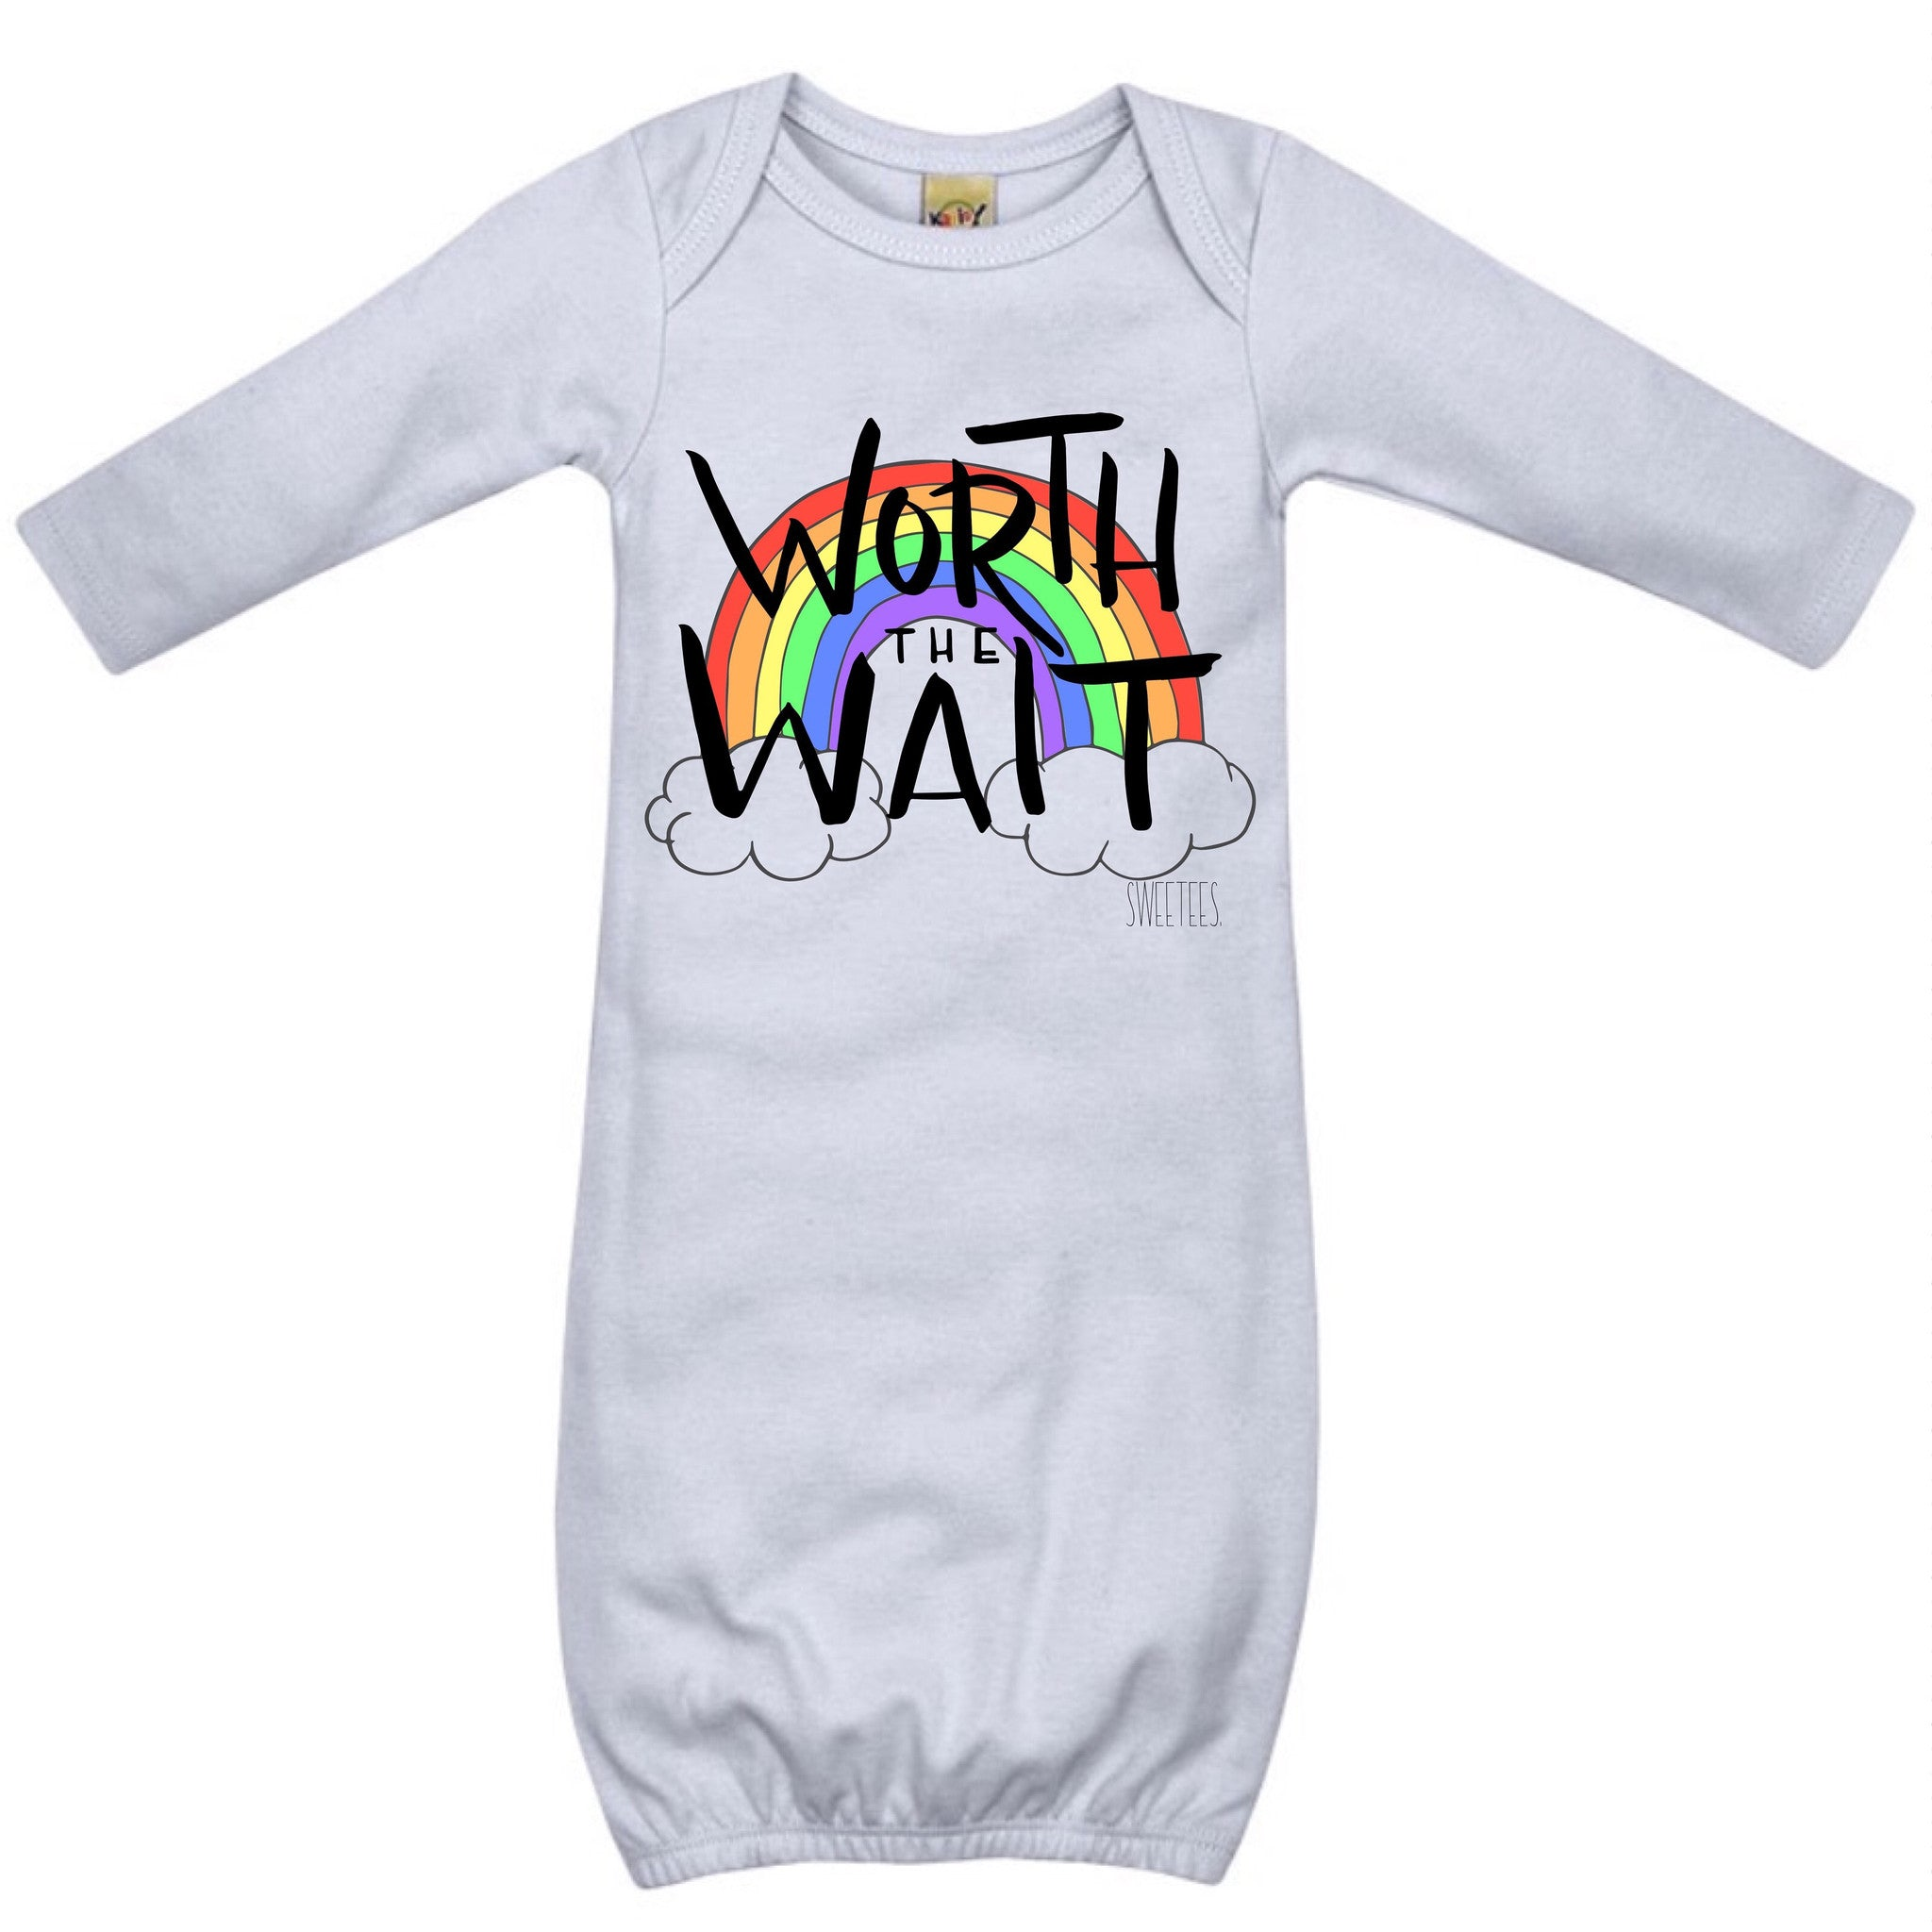 Worth The Wait Infant Gown – Sweetees Apparel